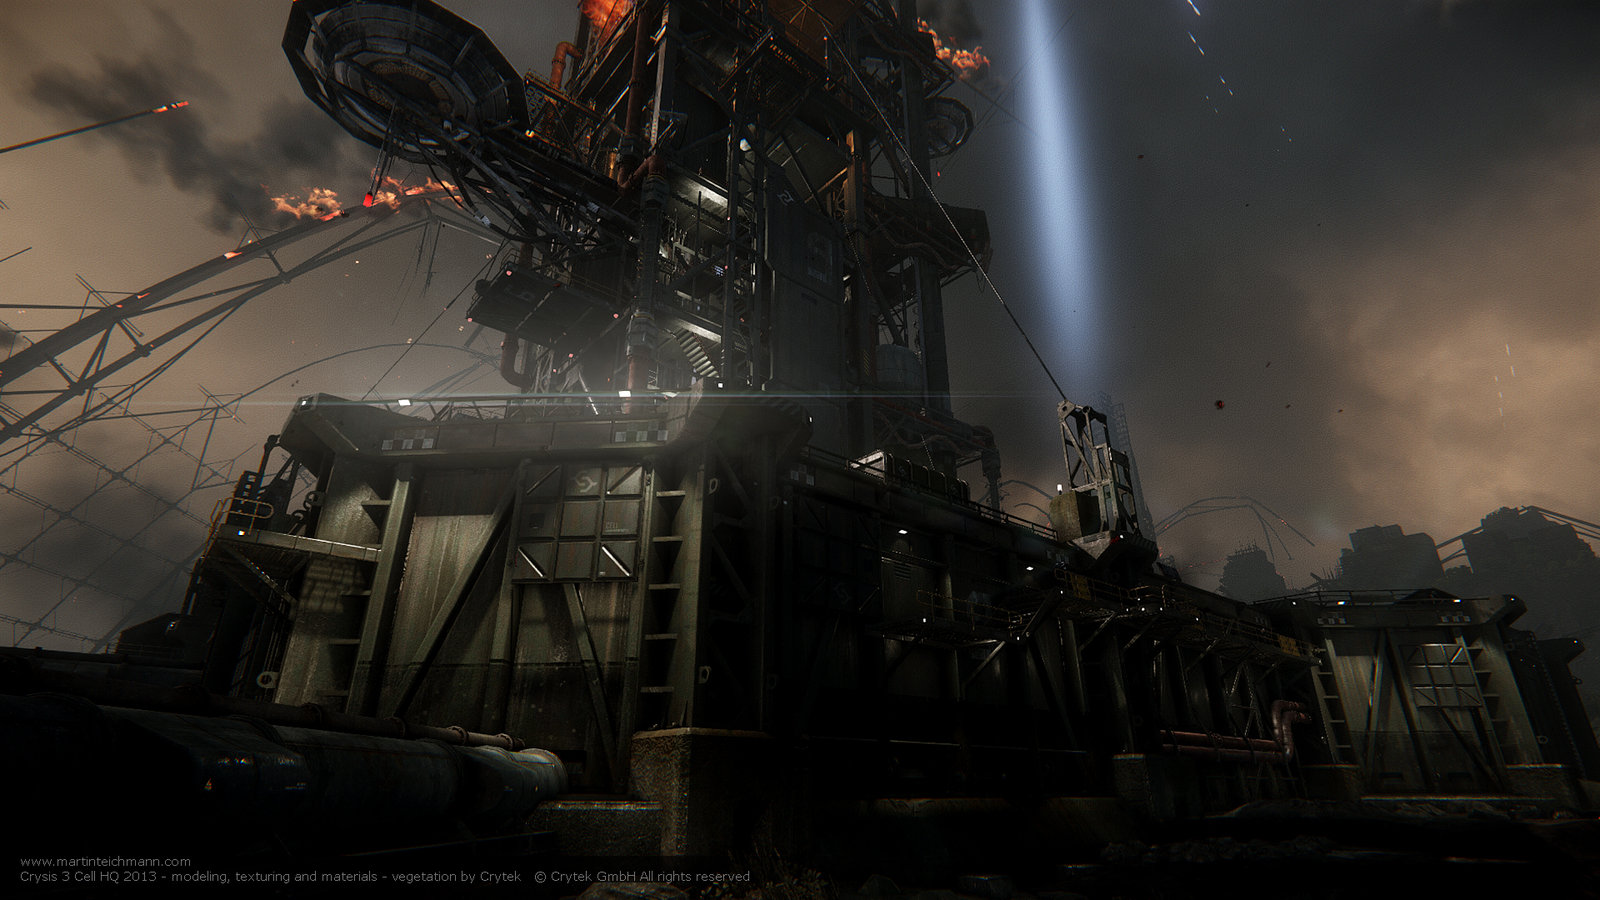 Crysis 3 Cell HQ - Red Star Rising Exterior 02